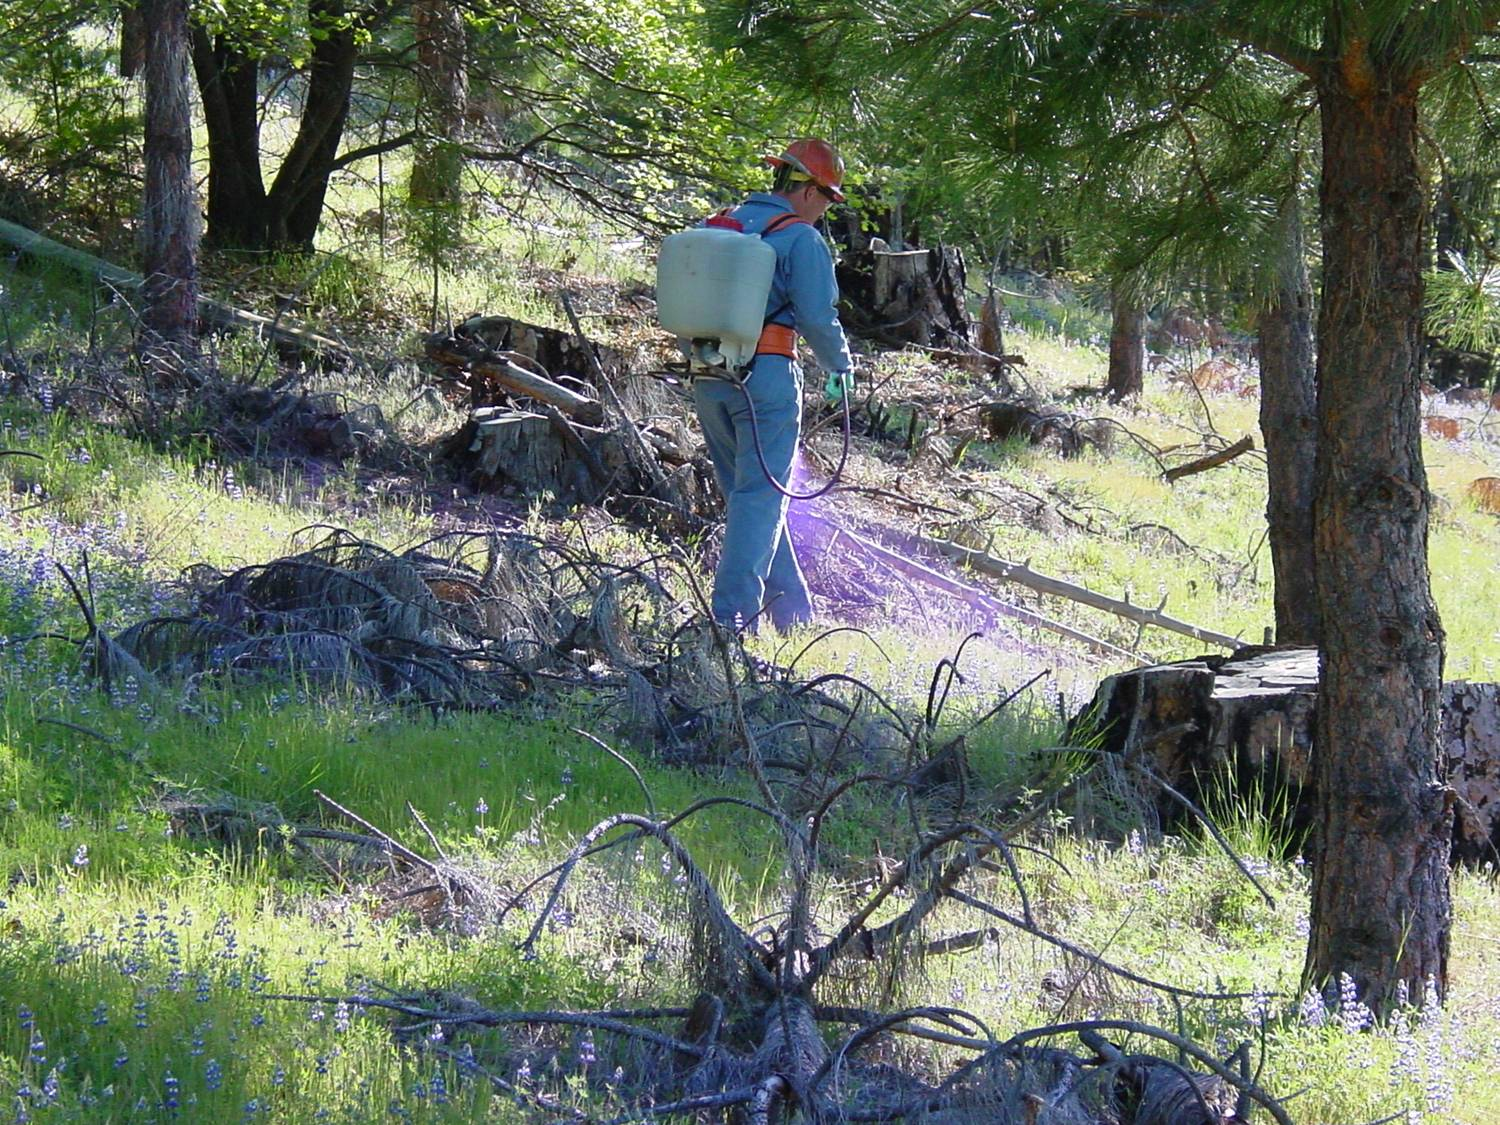 Forest Service employee on the Eldorado National Forest spraying herbicide using a backpack sprayer, targeting yellow starthistle seedlings in the spring.  The herbicide is visible as a purple mist due to the colorant added to the mixture.  In an older ponderosa pine plantation, on a hillside.  The employee is wearing coveralls, a hardhat, goggles, and gloves as part of the required personal protective equipment for this type of work.